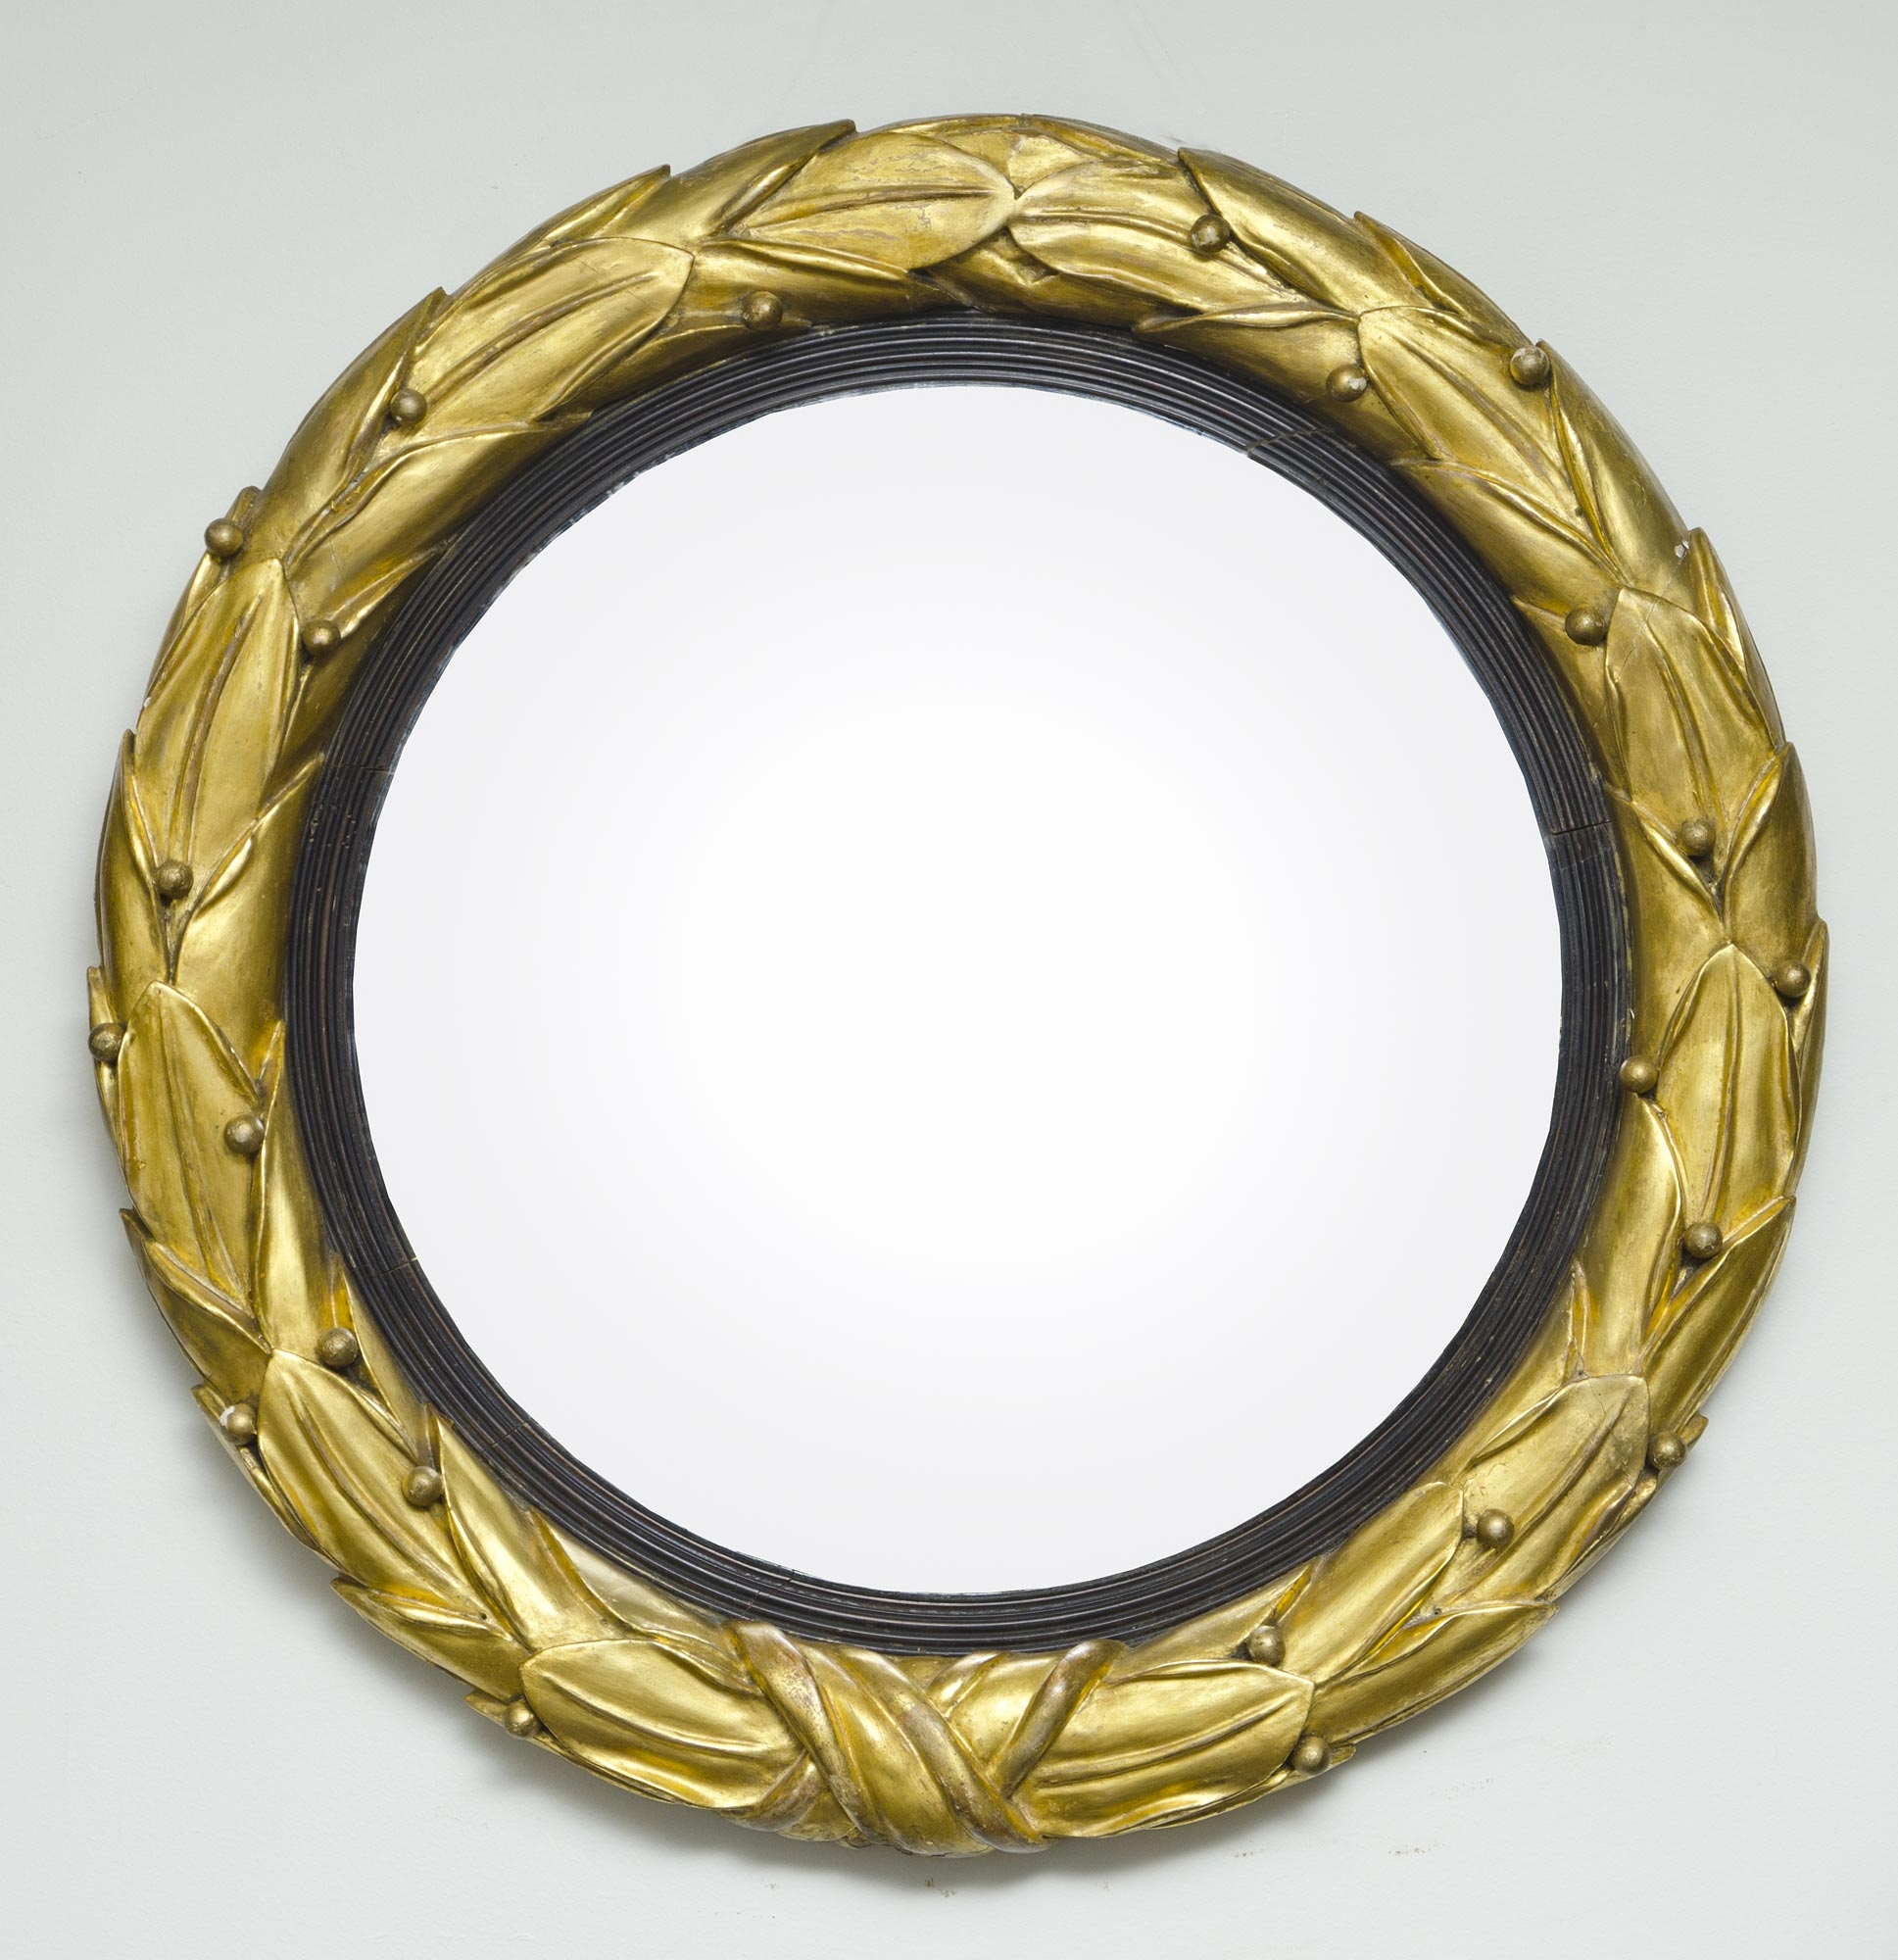 Antique Convex Mirrors 1700s 1800s Convex Mirrors Throughout Antique Convex Mirrors For Sale (Image 4 of 15)